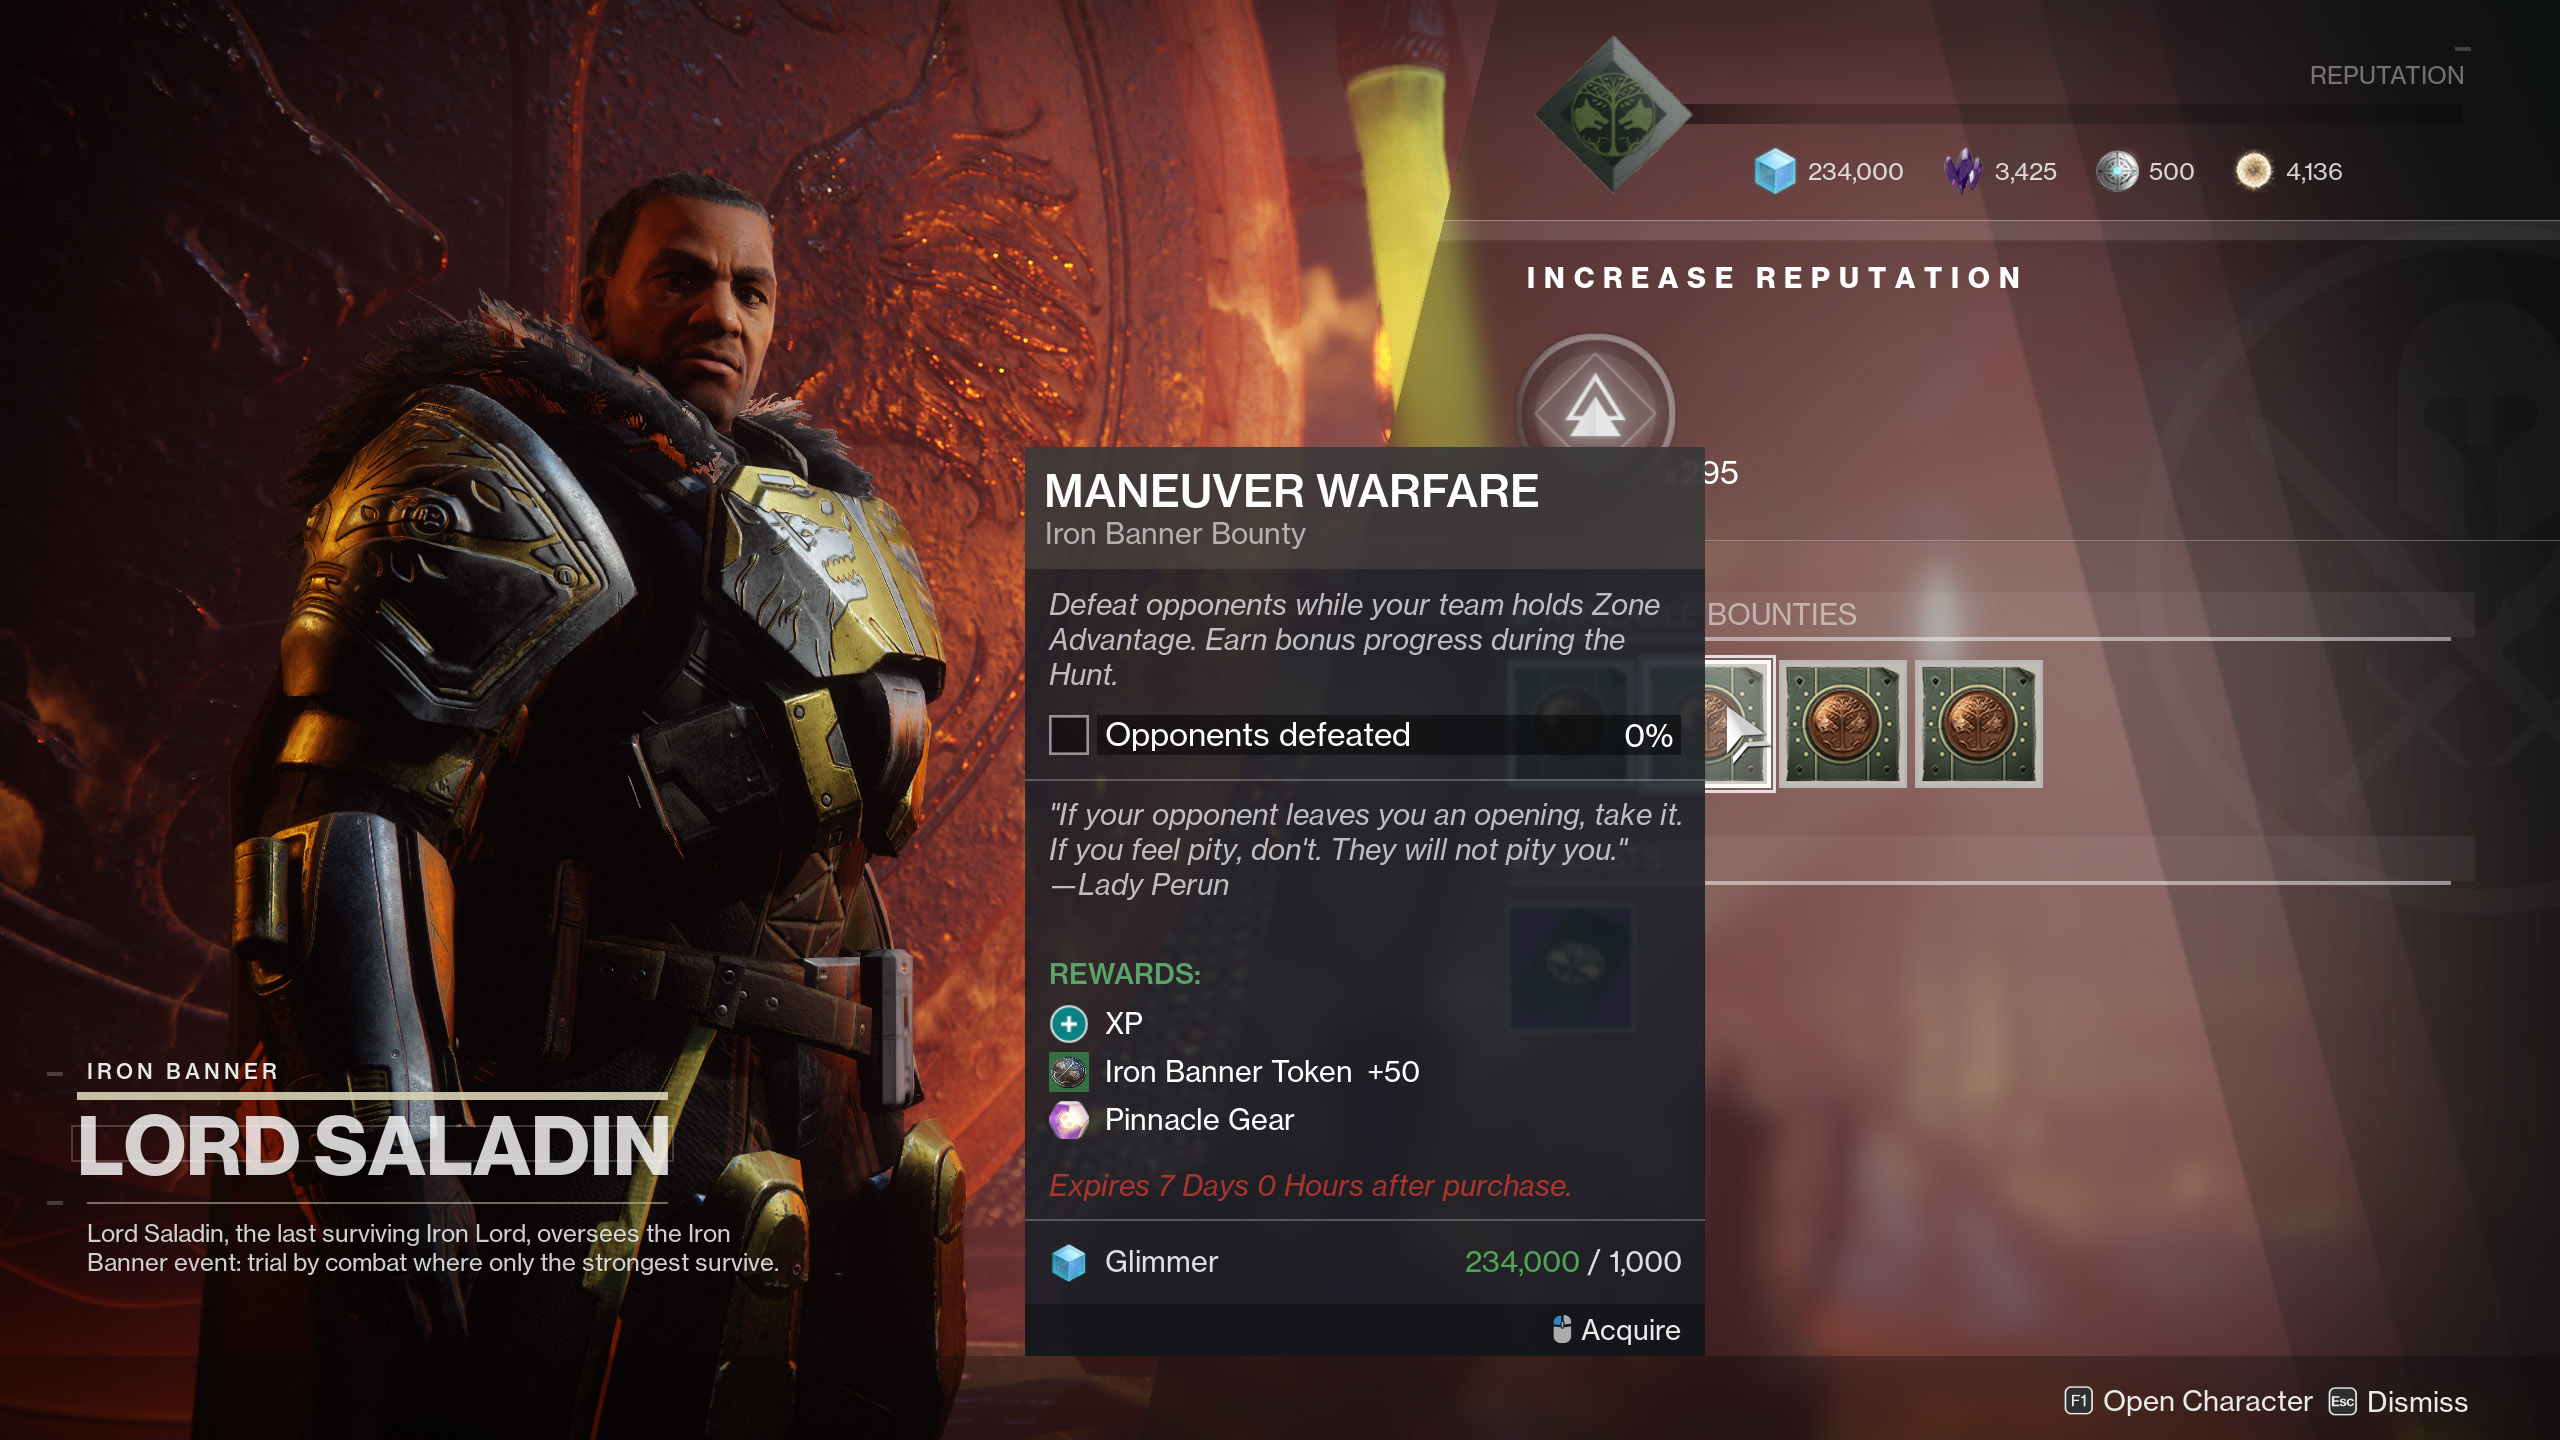 Maneuver Warfare Iron Banner Bounty